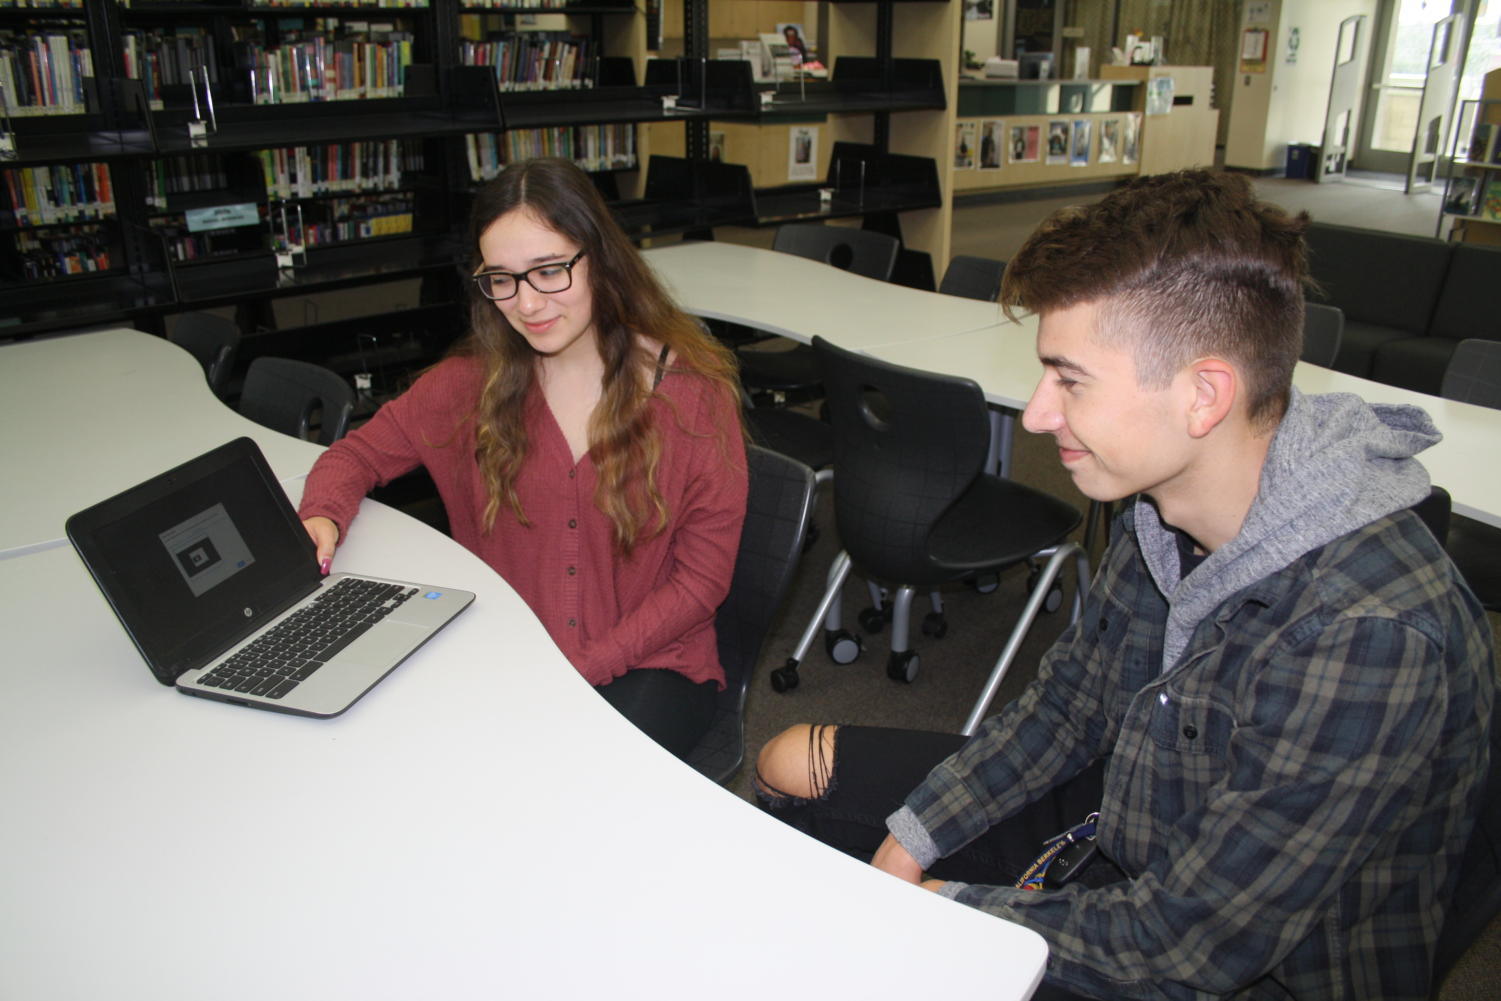 From Left: Godinez Fundamental High School seniors, Rachel Quezada and Nathan Escobedo are annoyed of the reoccurring LAN screen that appears each morning when they open their Chromebooks at school. Photo taken in the GFHS Library on January 30, 2019.